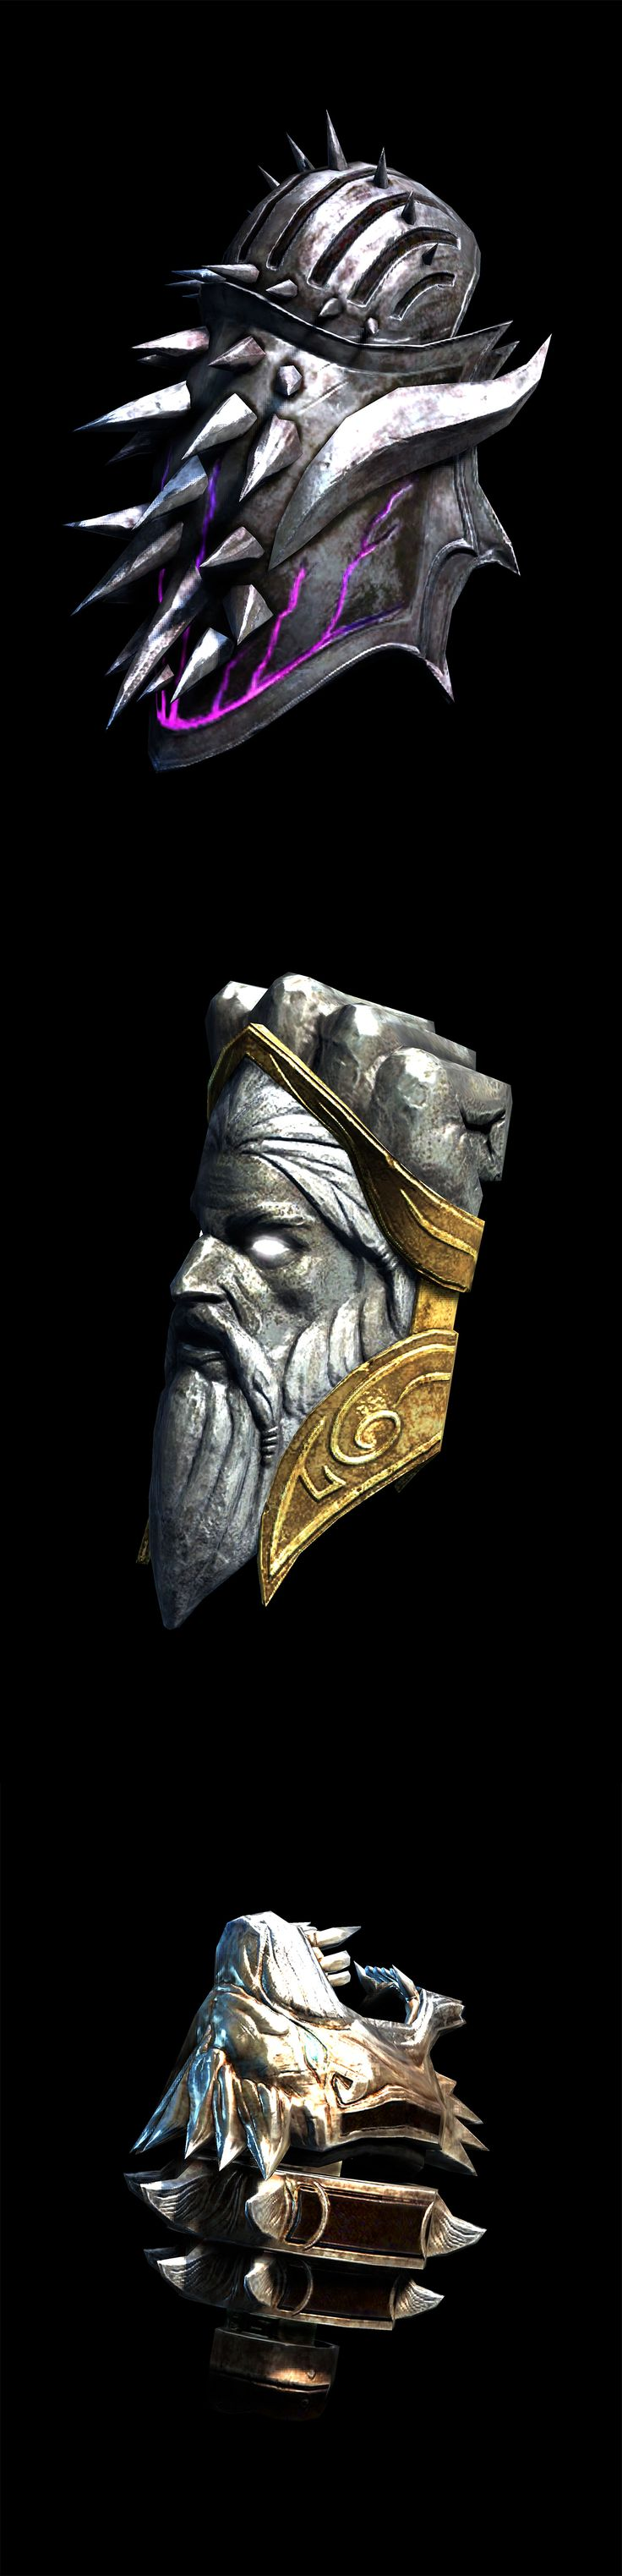 God of War - Weapon - Gauntlet of Hades, Gauntlets of Zeus, Nemean Cestus_by God of War_from PlayStation Forums_點開有該裝備實際使用於遊戲中之截圖